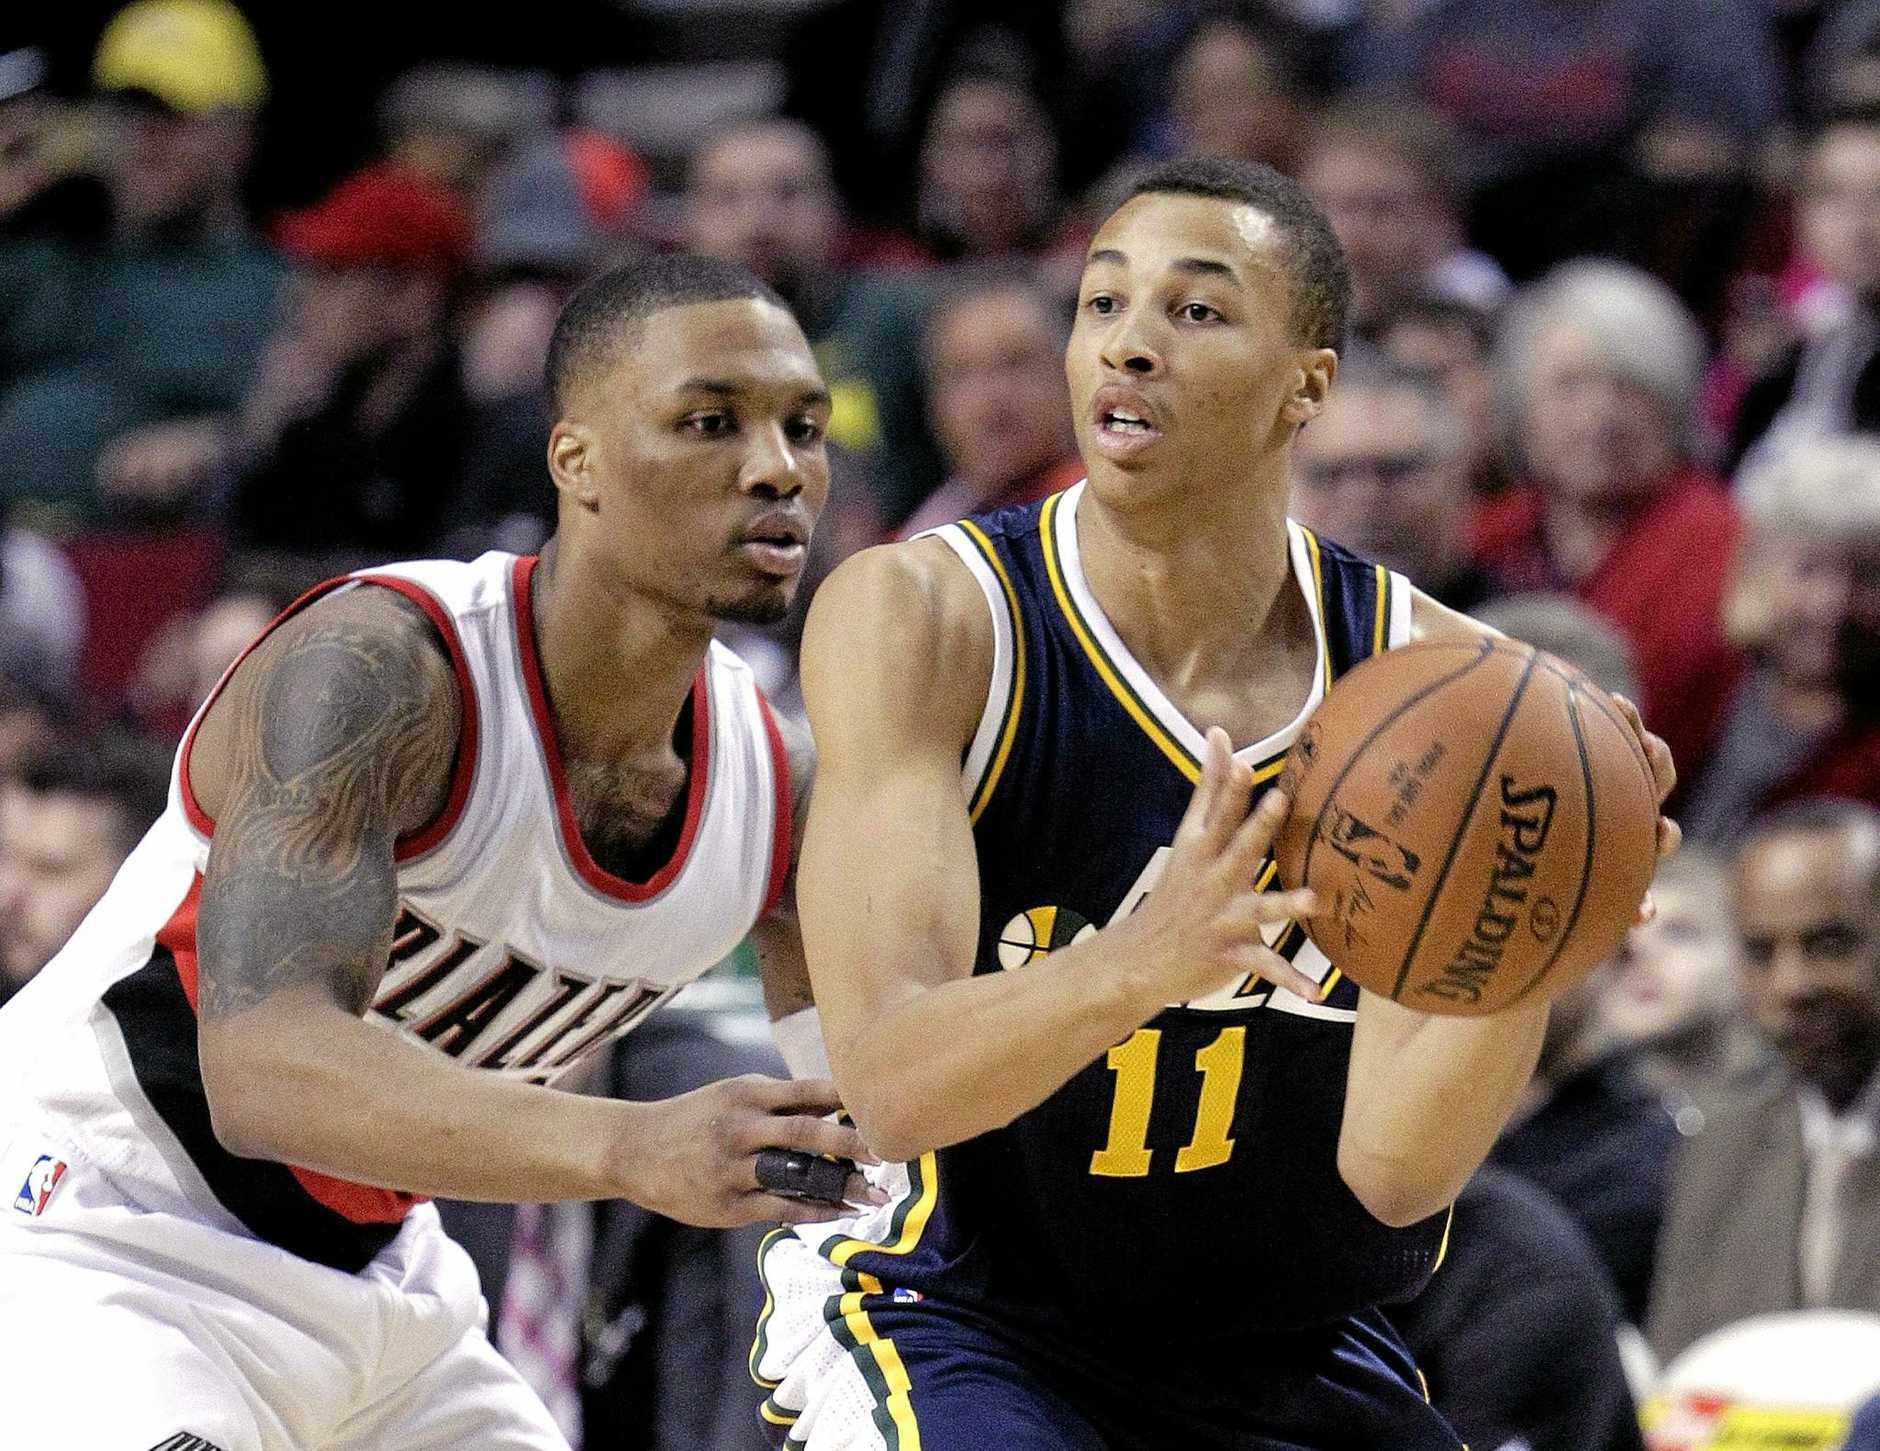 Utah Jazz guard Dante Exum, from Australia, right, works the ball against Portland Trail Blazers guard Damian Lillard during the first half of an NBA basketball game in Portland, Ore., Tuesday, Feb. 3, 2015.  (AP Photo/Don Ryan)